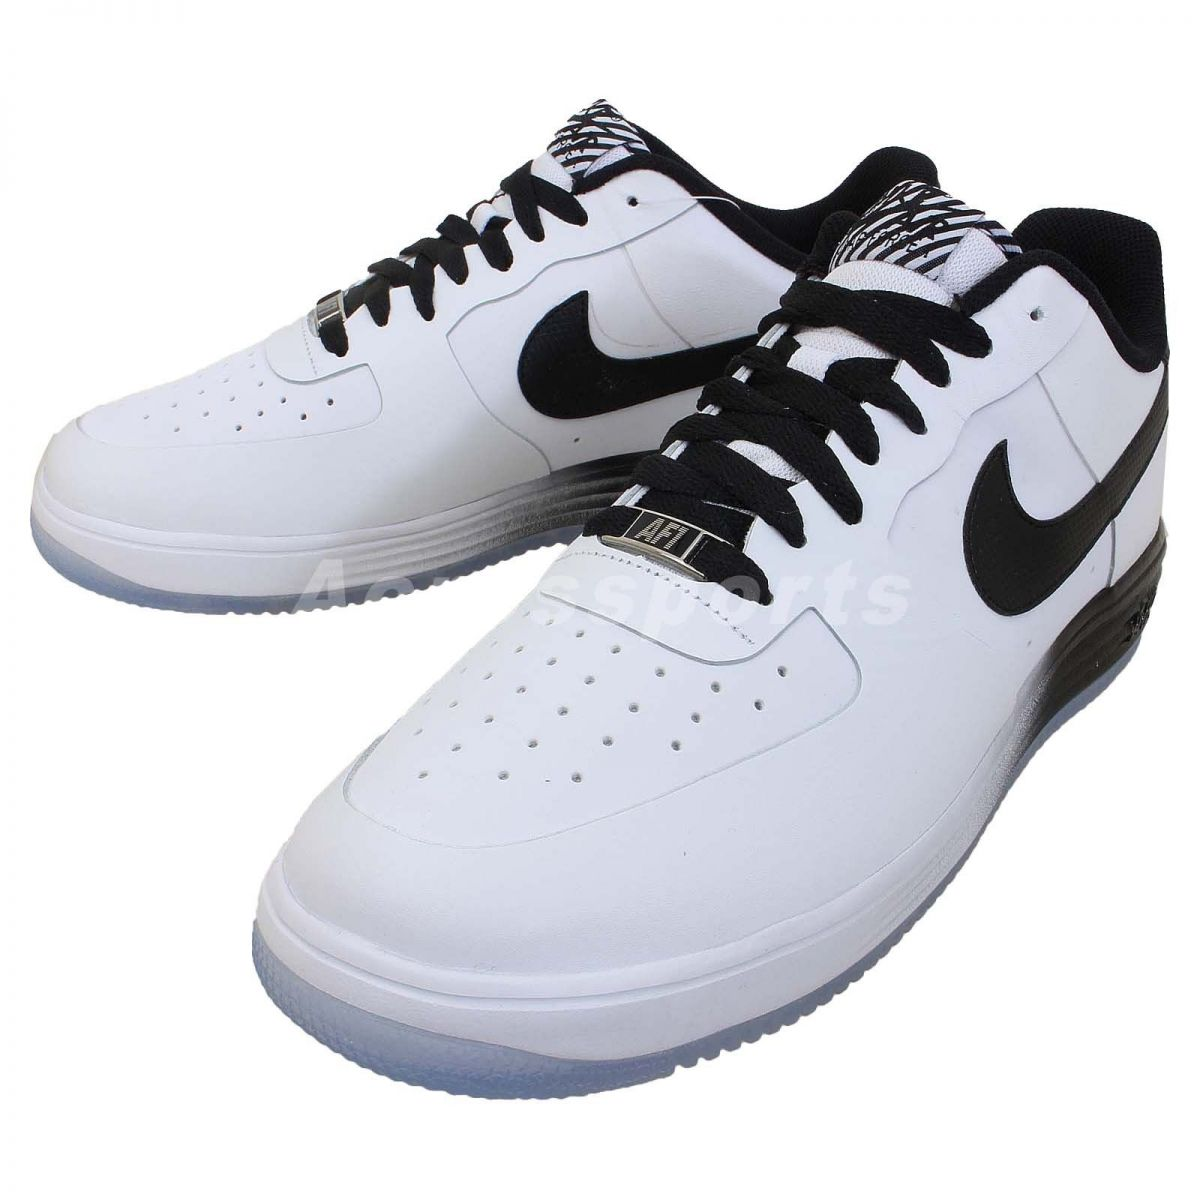 new concept fa576 5a204 Nike Lunar Force 1 NS - White/Black | Sole Collector